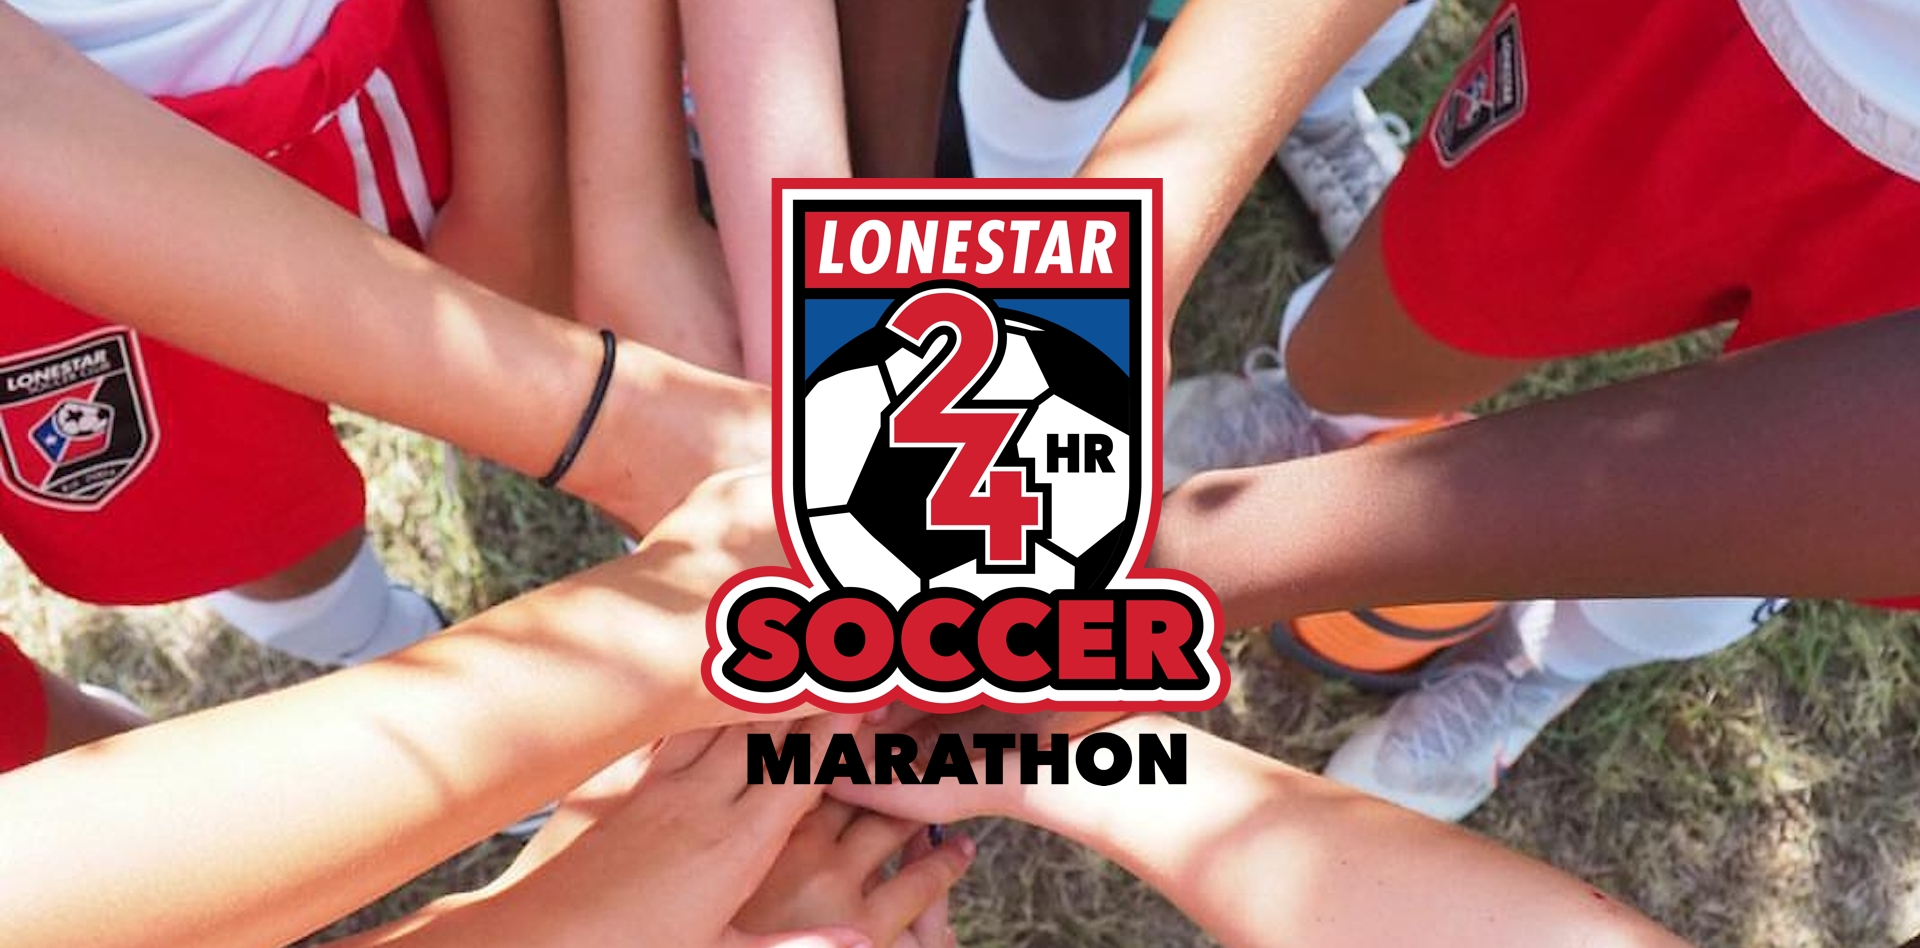 Lonestar 24 Hour Marathon